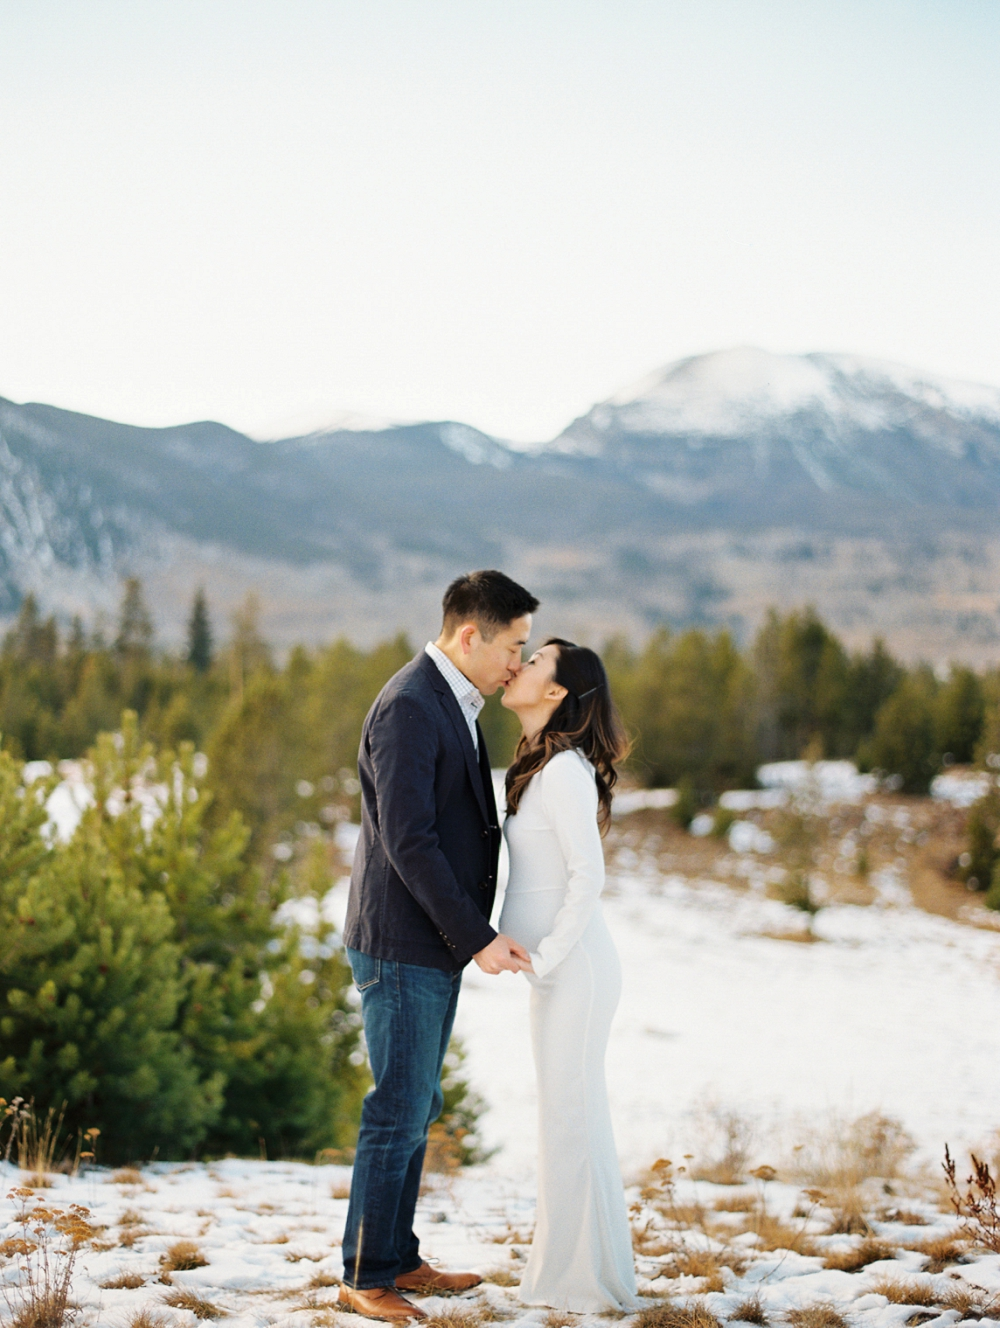 Dani-Cowan-Photography-Snowy-Colorado-Mountain-Maternity-Photoshoot64_WEB